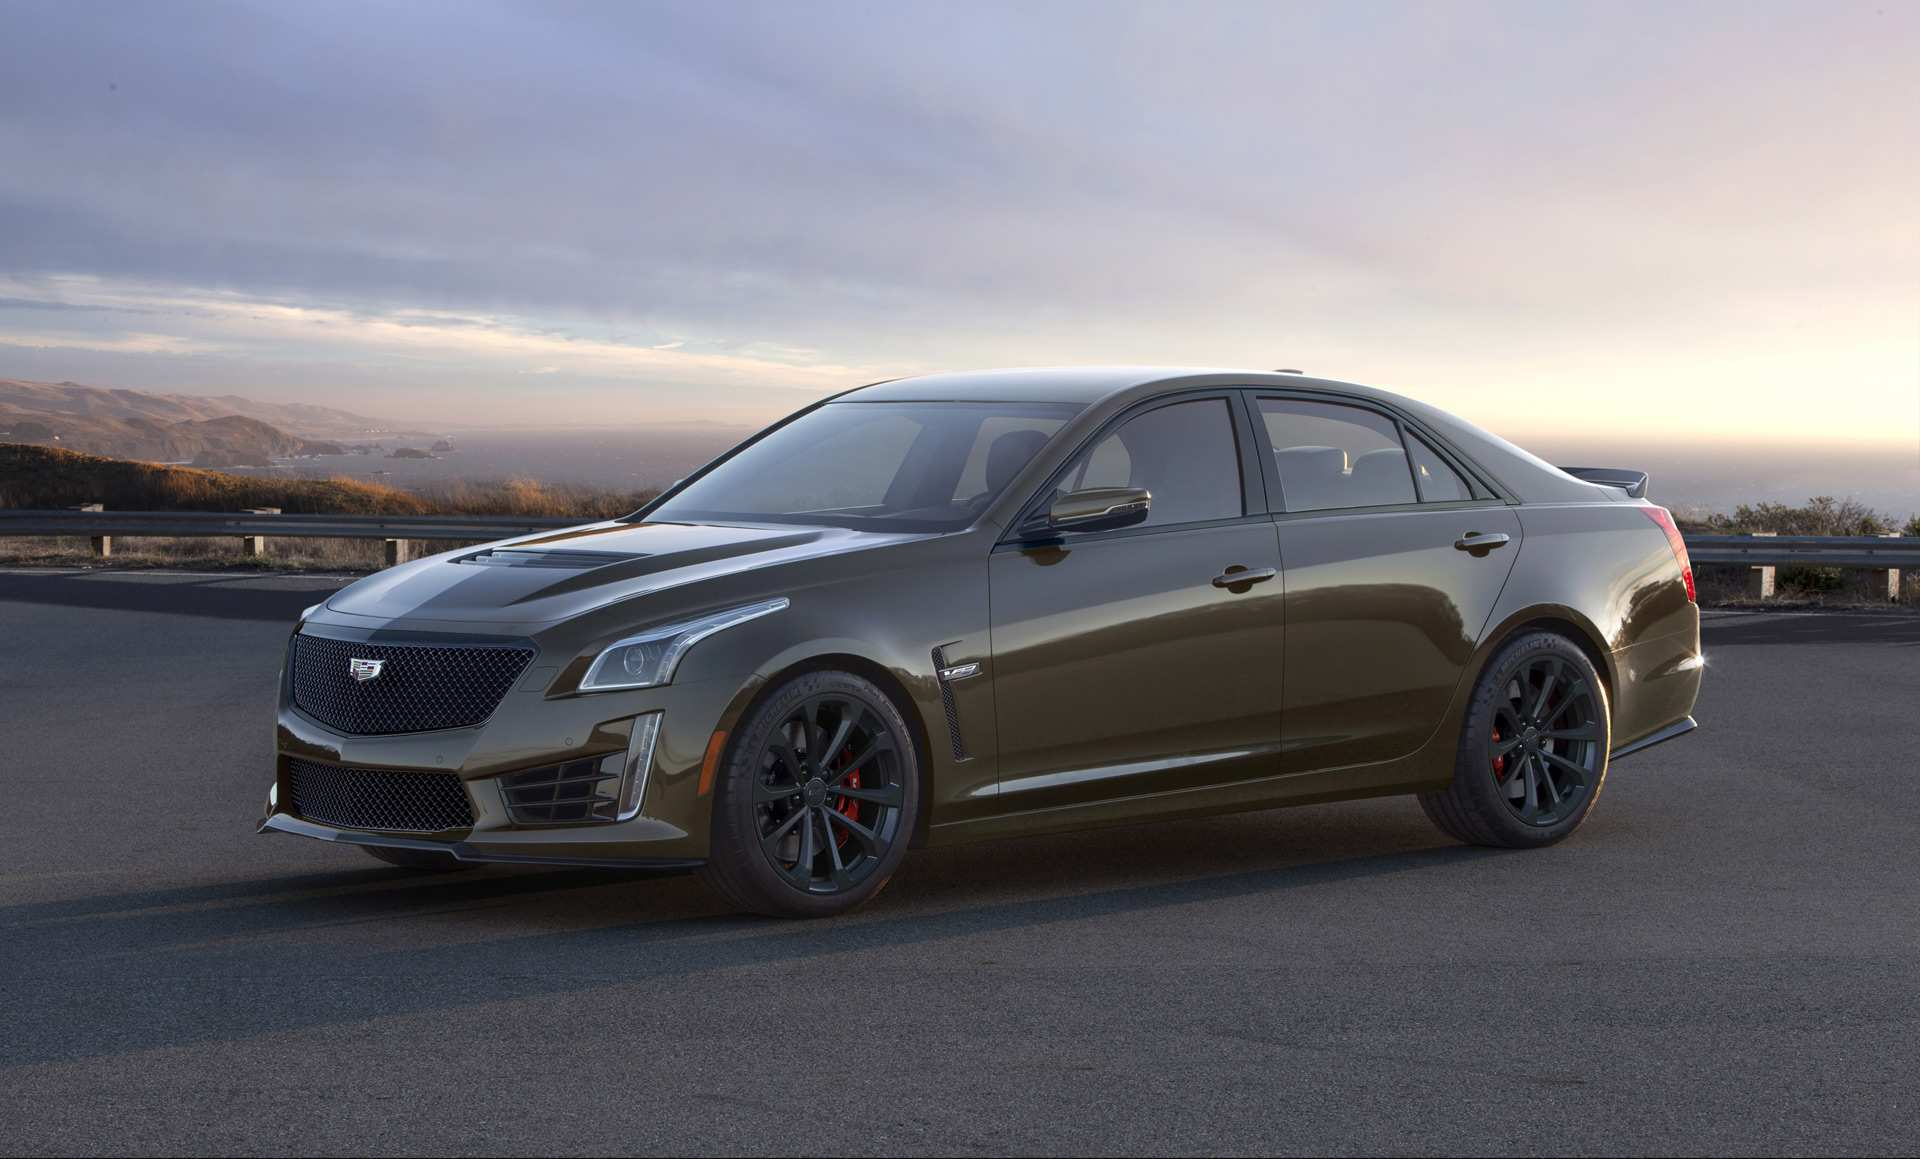 91 Gallery of New 2019 Cadillac Cts V Hp First Drive Interior with New 2019 Cadillac Cts V Hp First Drive